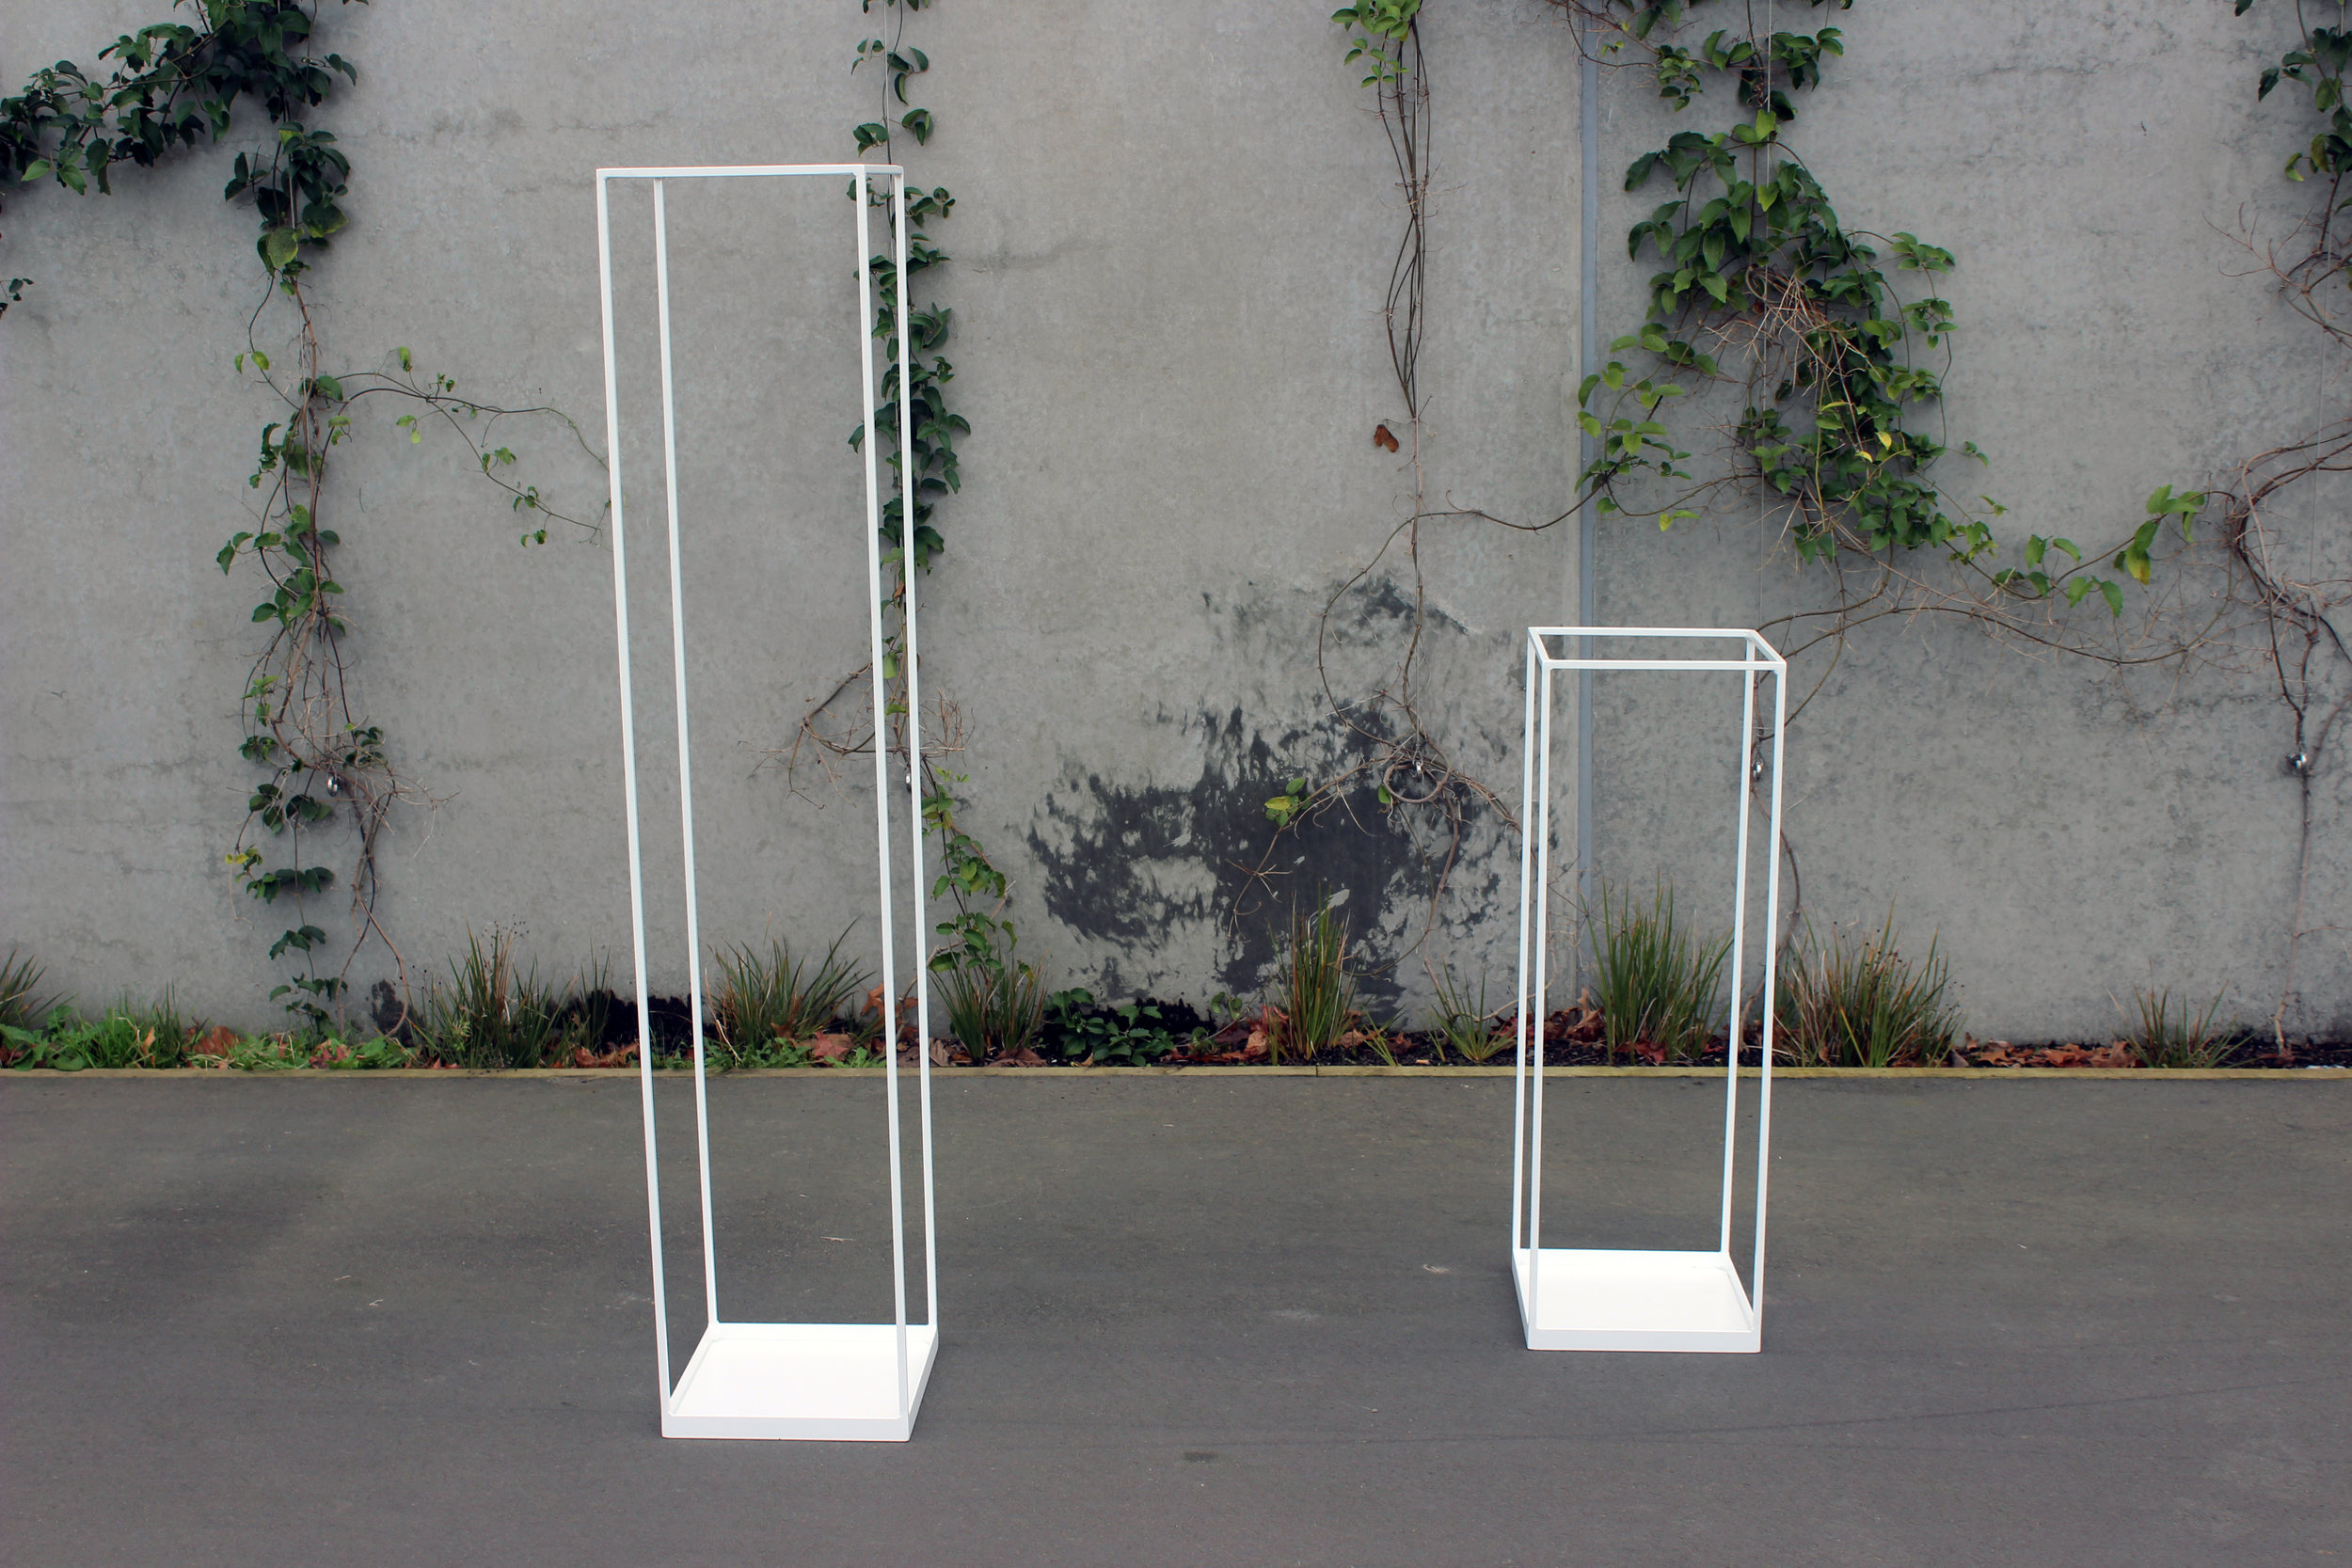 Steel Floral Stands - White - Sizes:90cm tall x 30cm x 30cm1.5m tall x 30cm x 30cmPOA